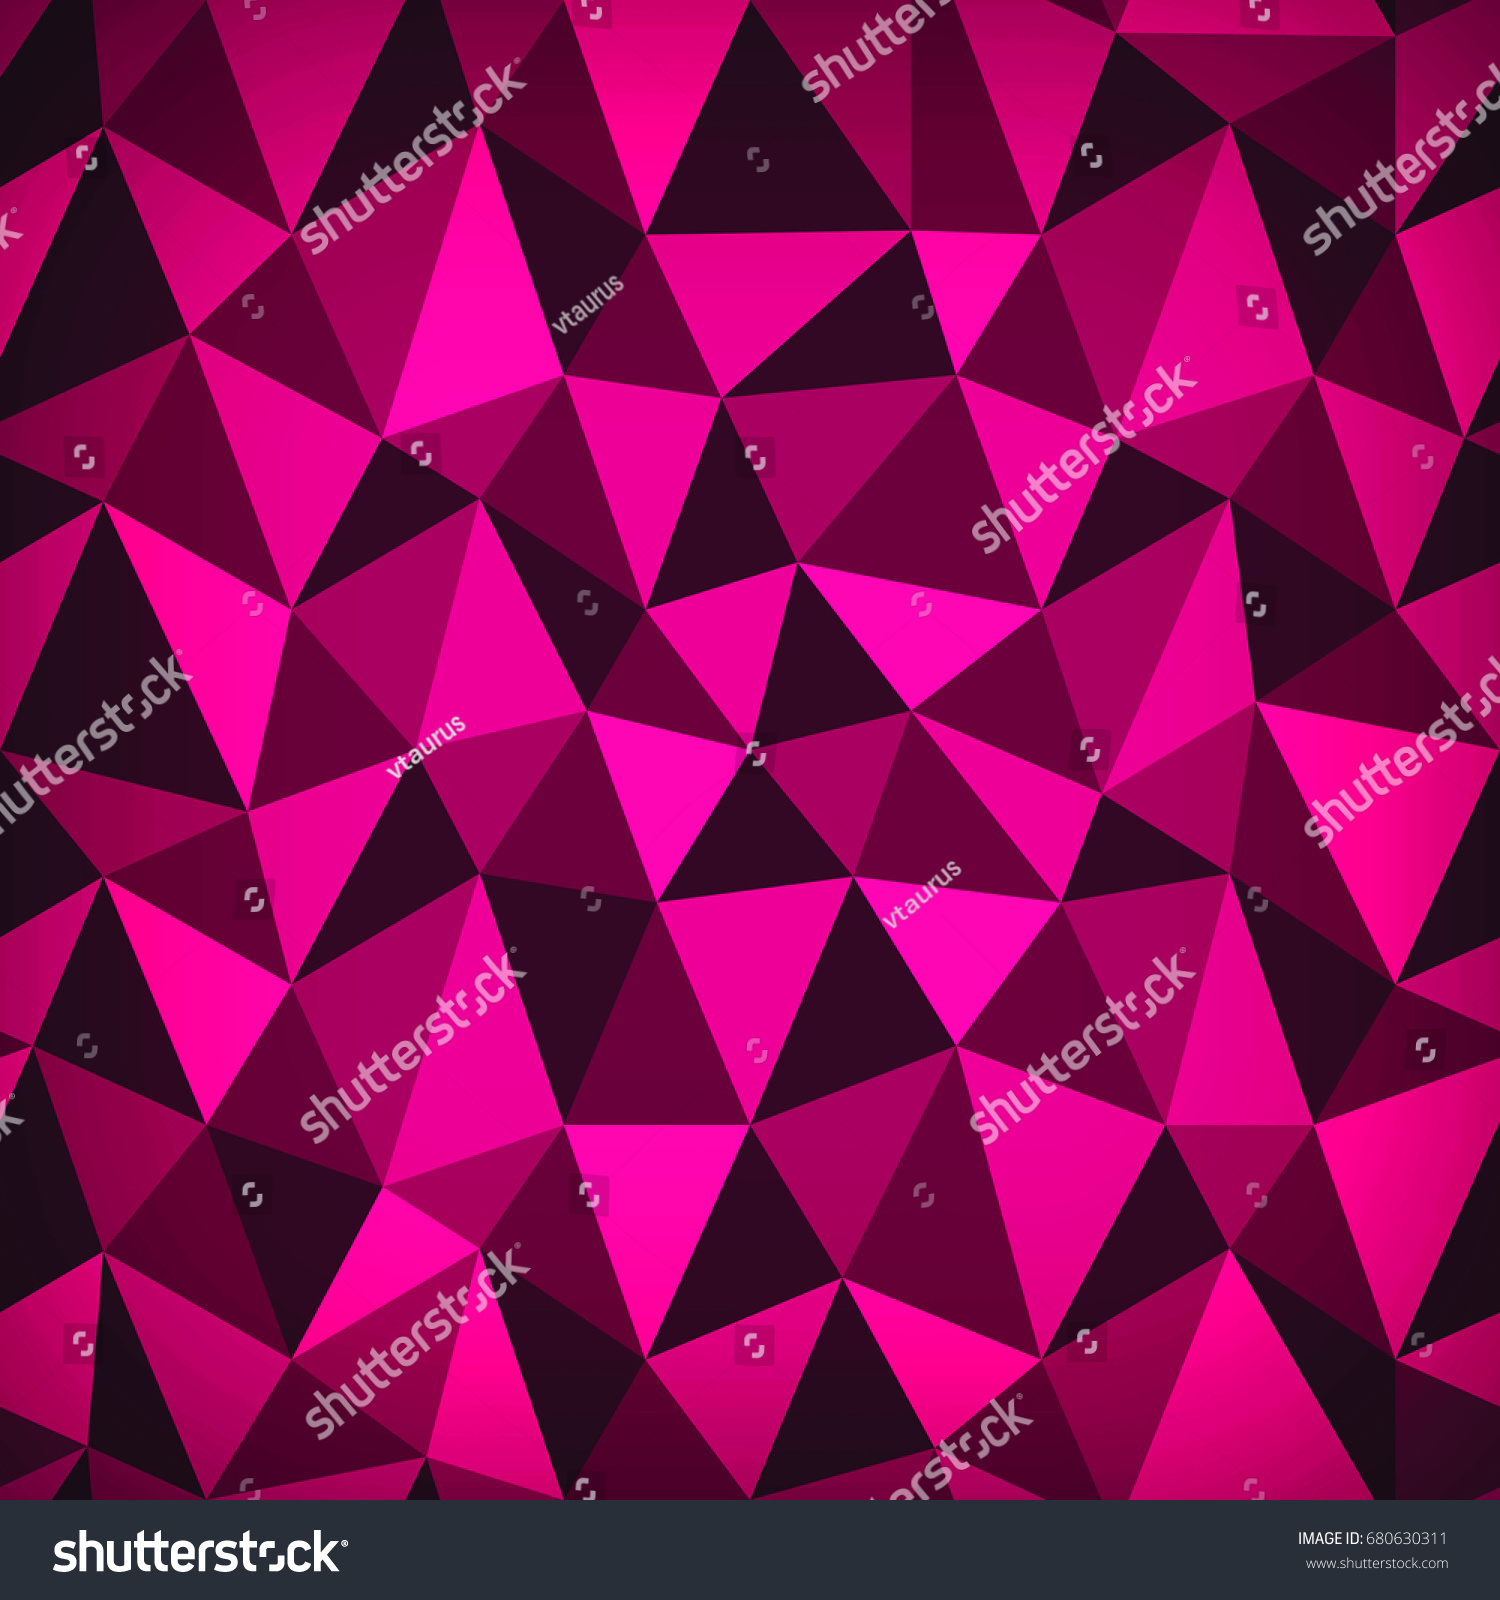 purple polygonal background banner template triangle pattern digital graphic